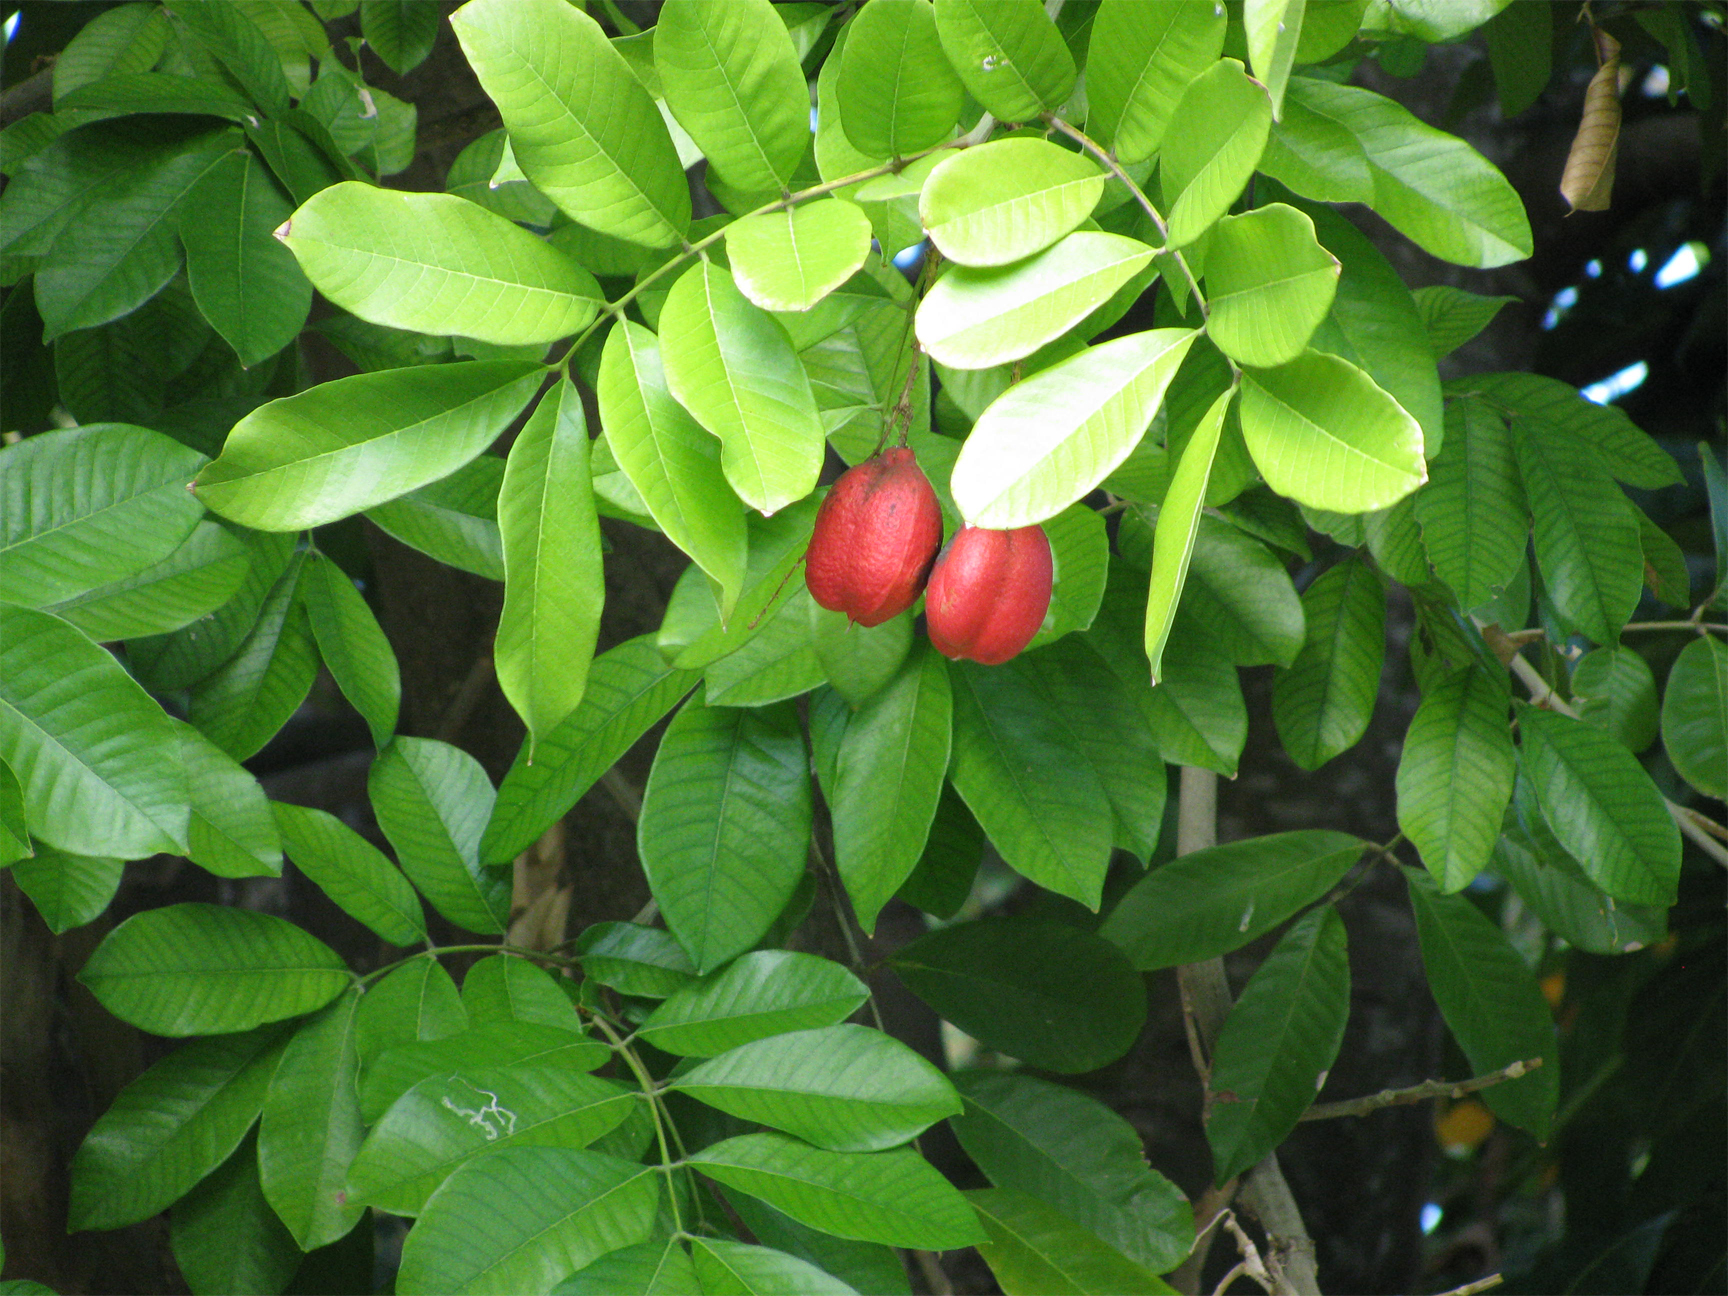 Leaves-of-Ackee-plant